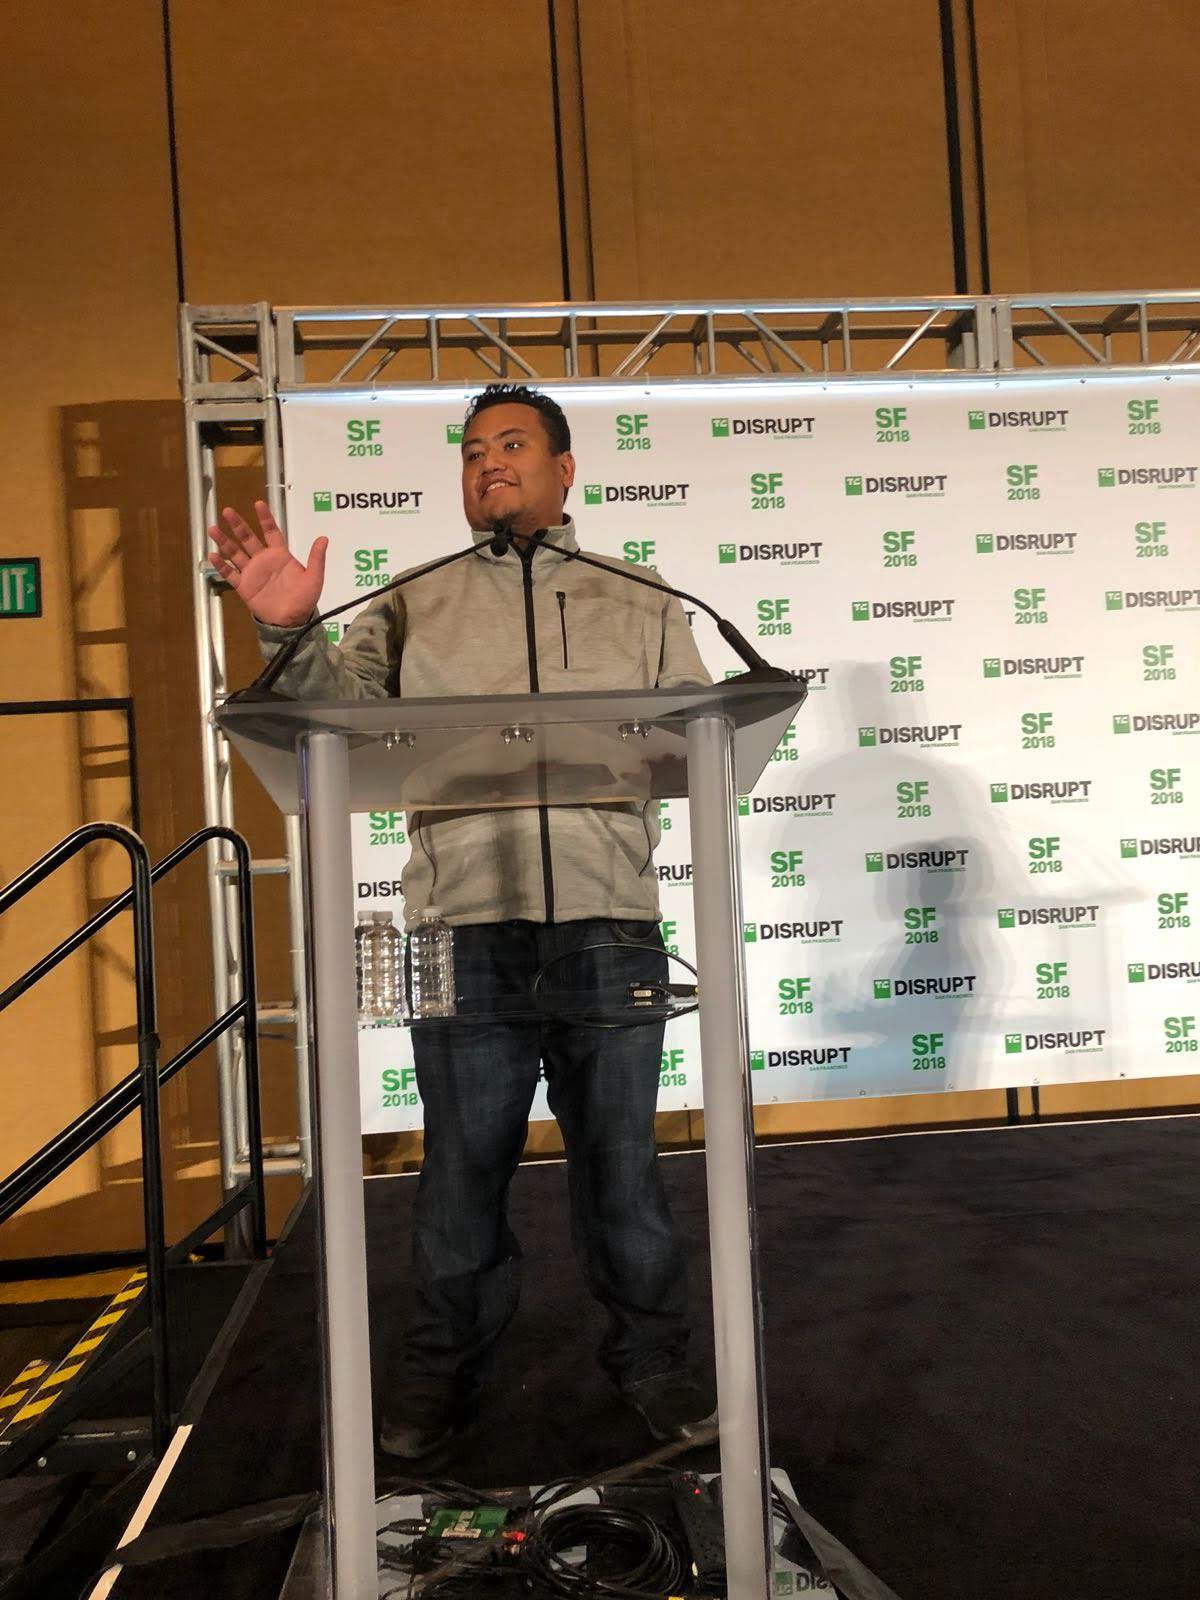 Asad Zulfahri on stage at TechCrunch San Francisco 2018